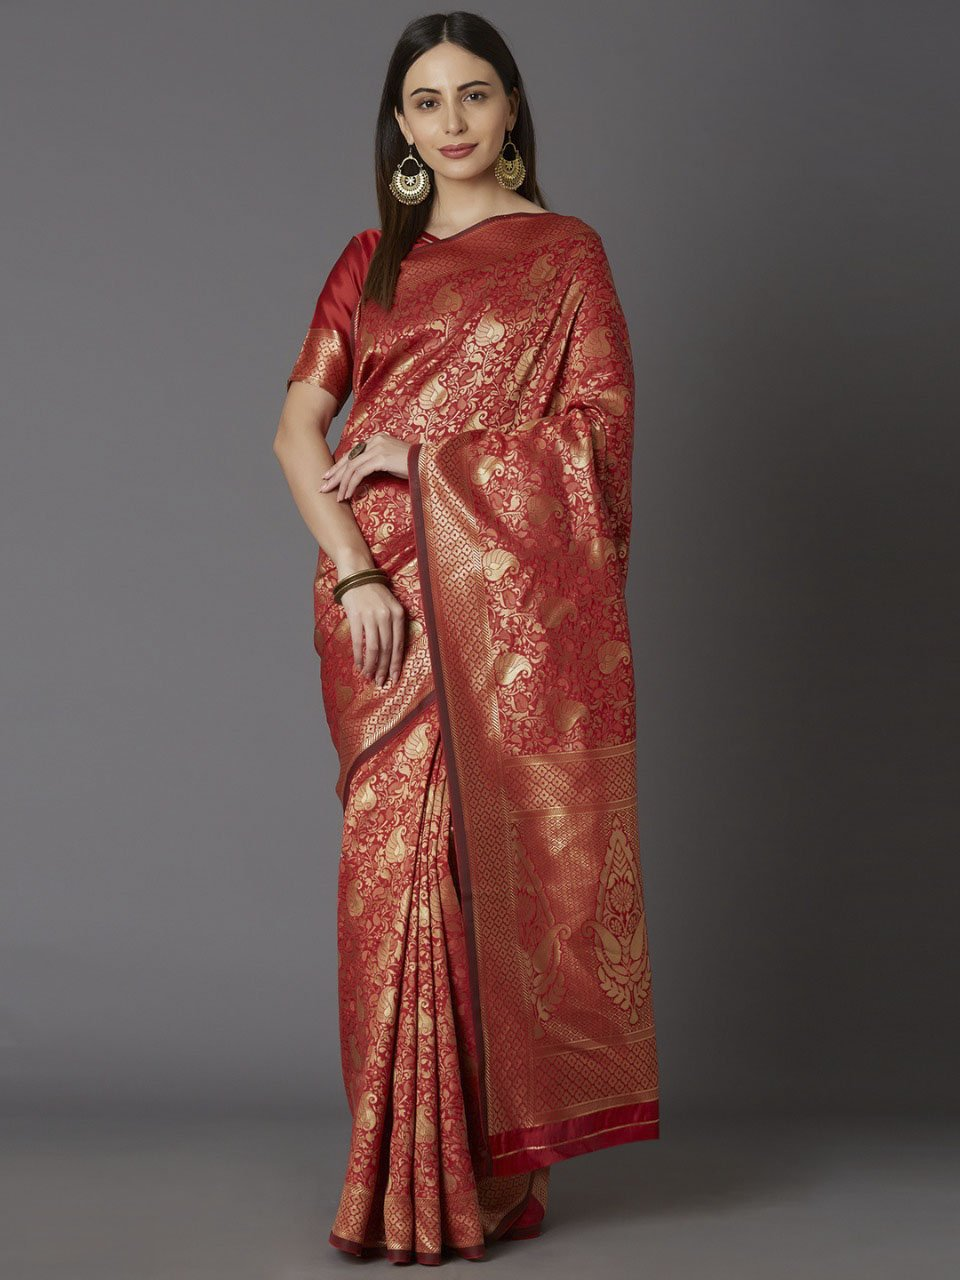 Awesome Red Woven Design Banarasi Saree